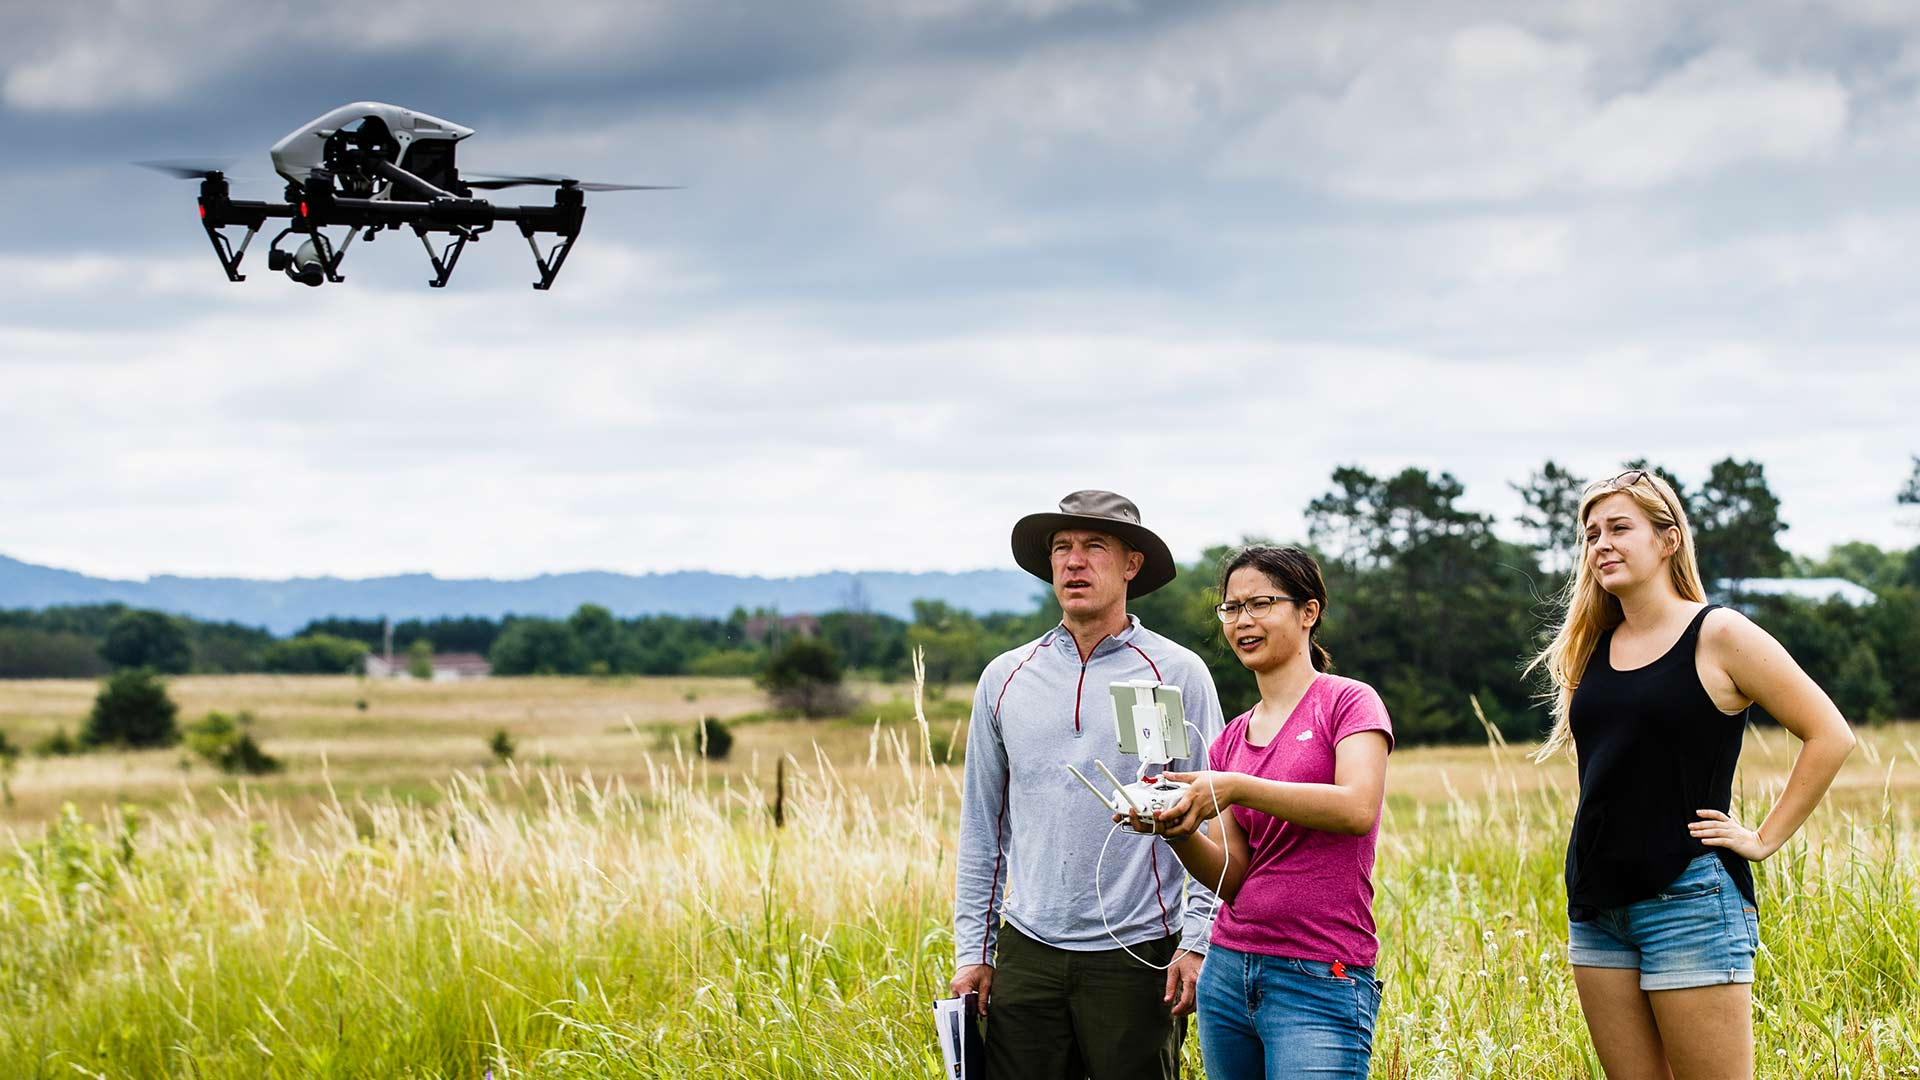 Professor and two students conduct research with the help of a drone in a field.